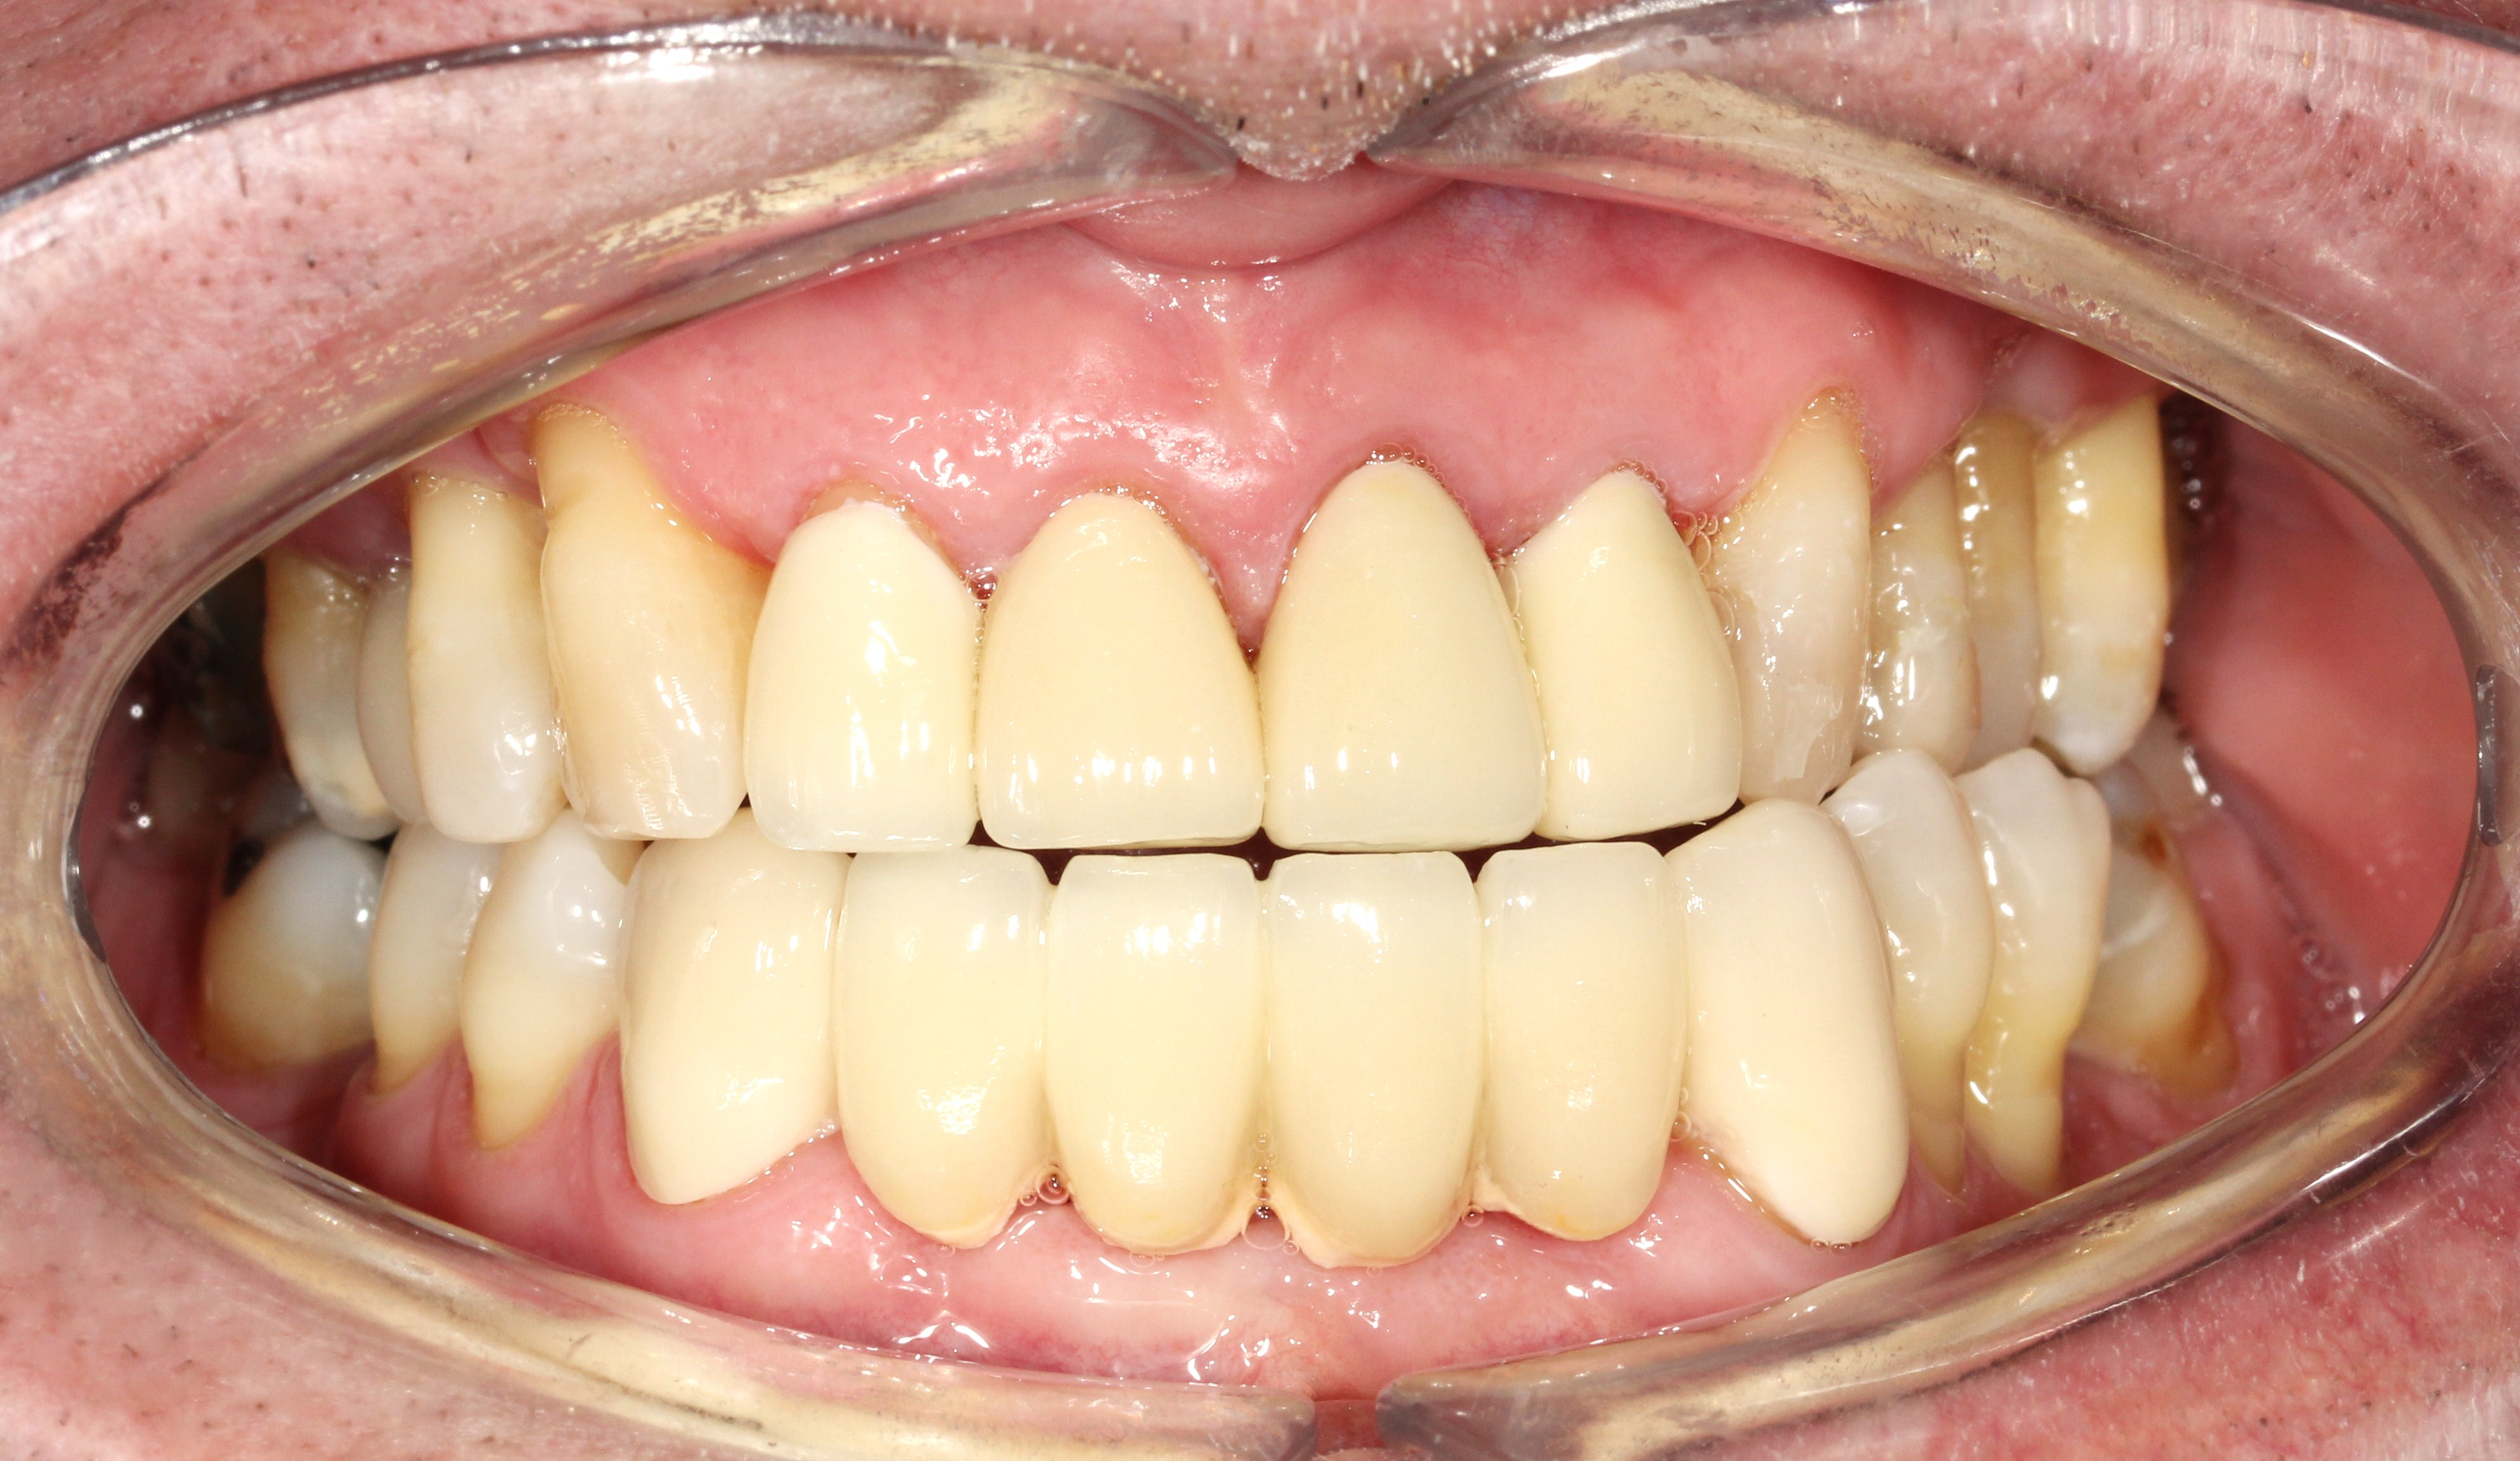 Mr Jane Was Unhappy With His Appearance Anterior Old Crowns And Bridge 6 Units Lower Were Replaced 1 Year Ago 4 Upper